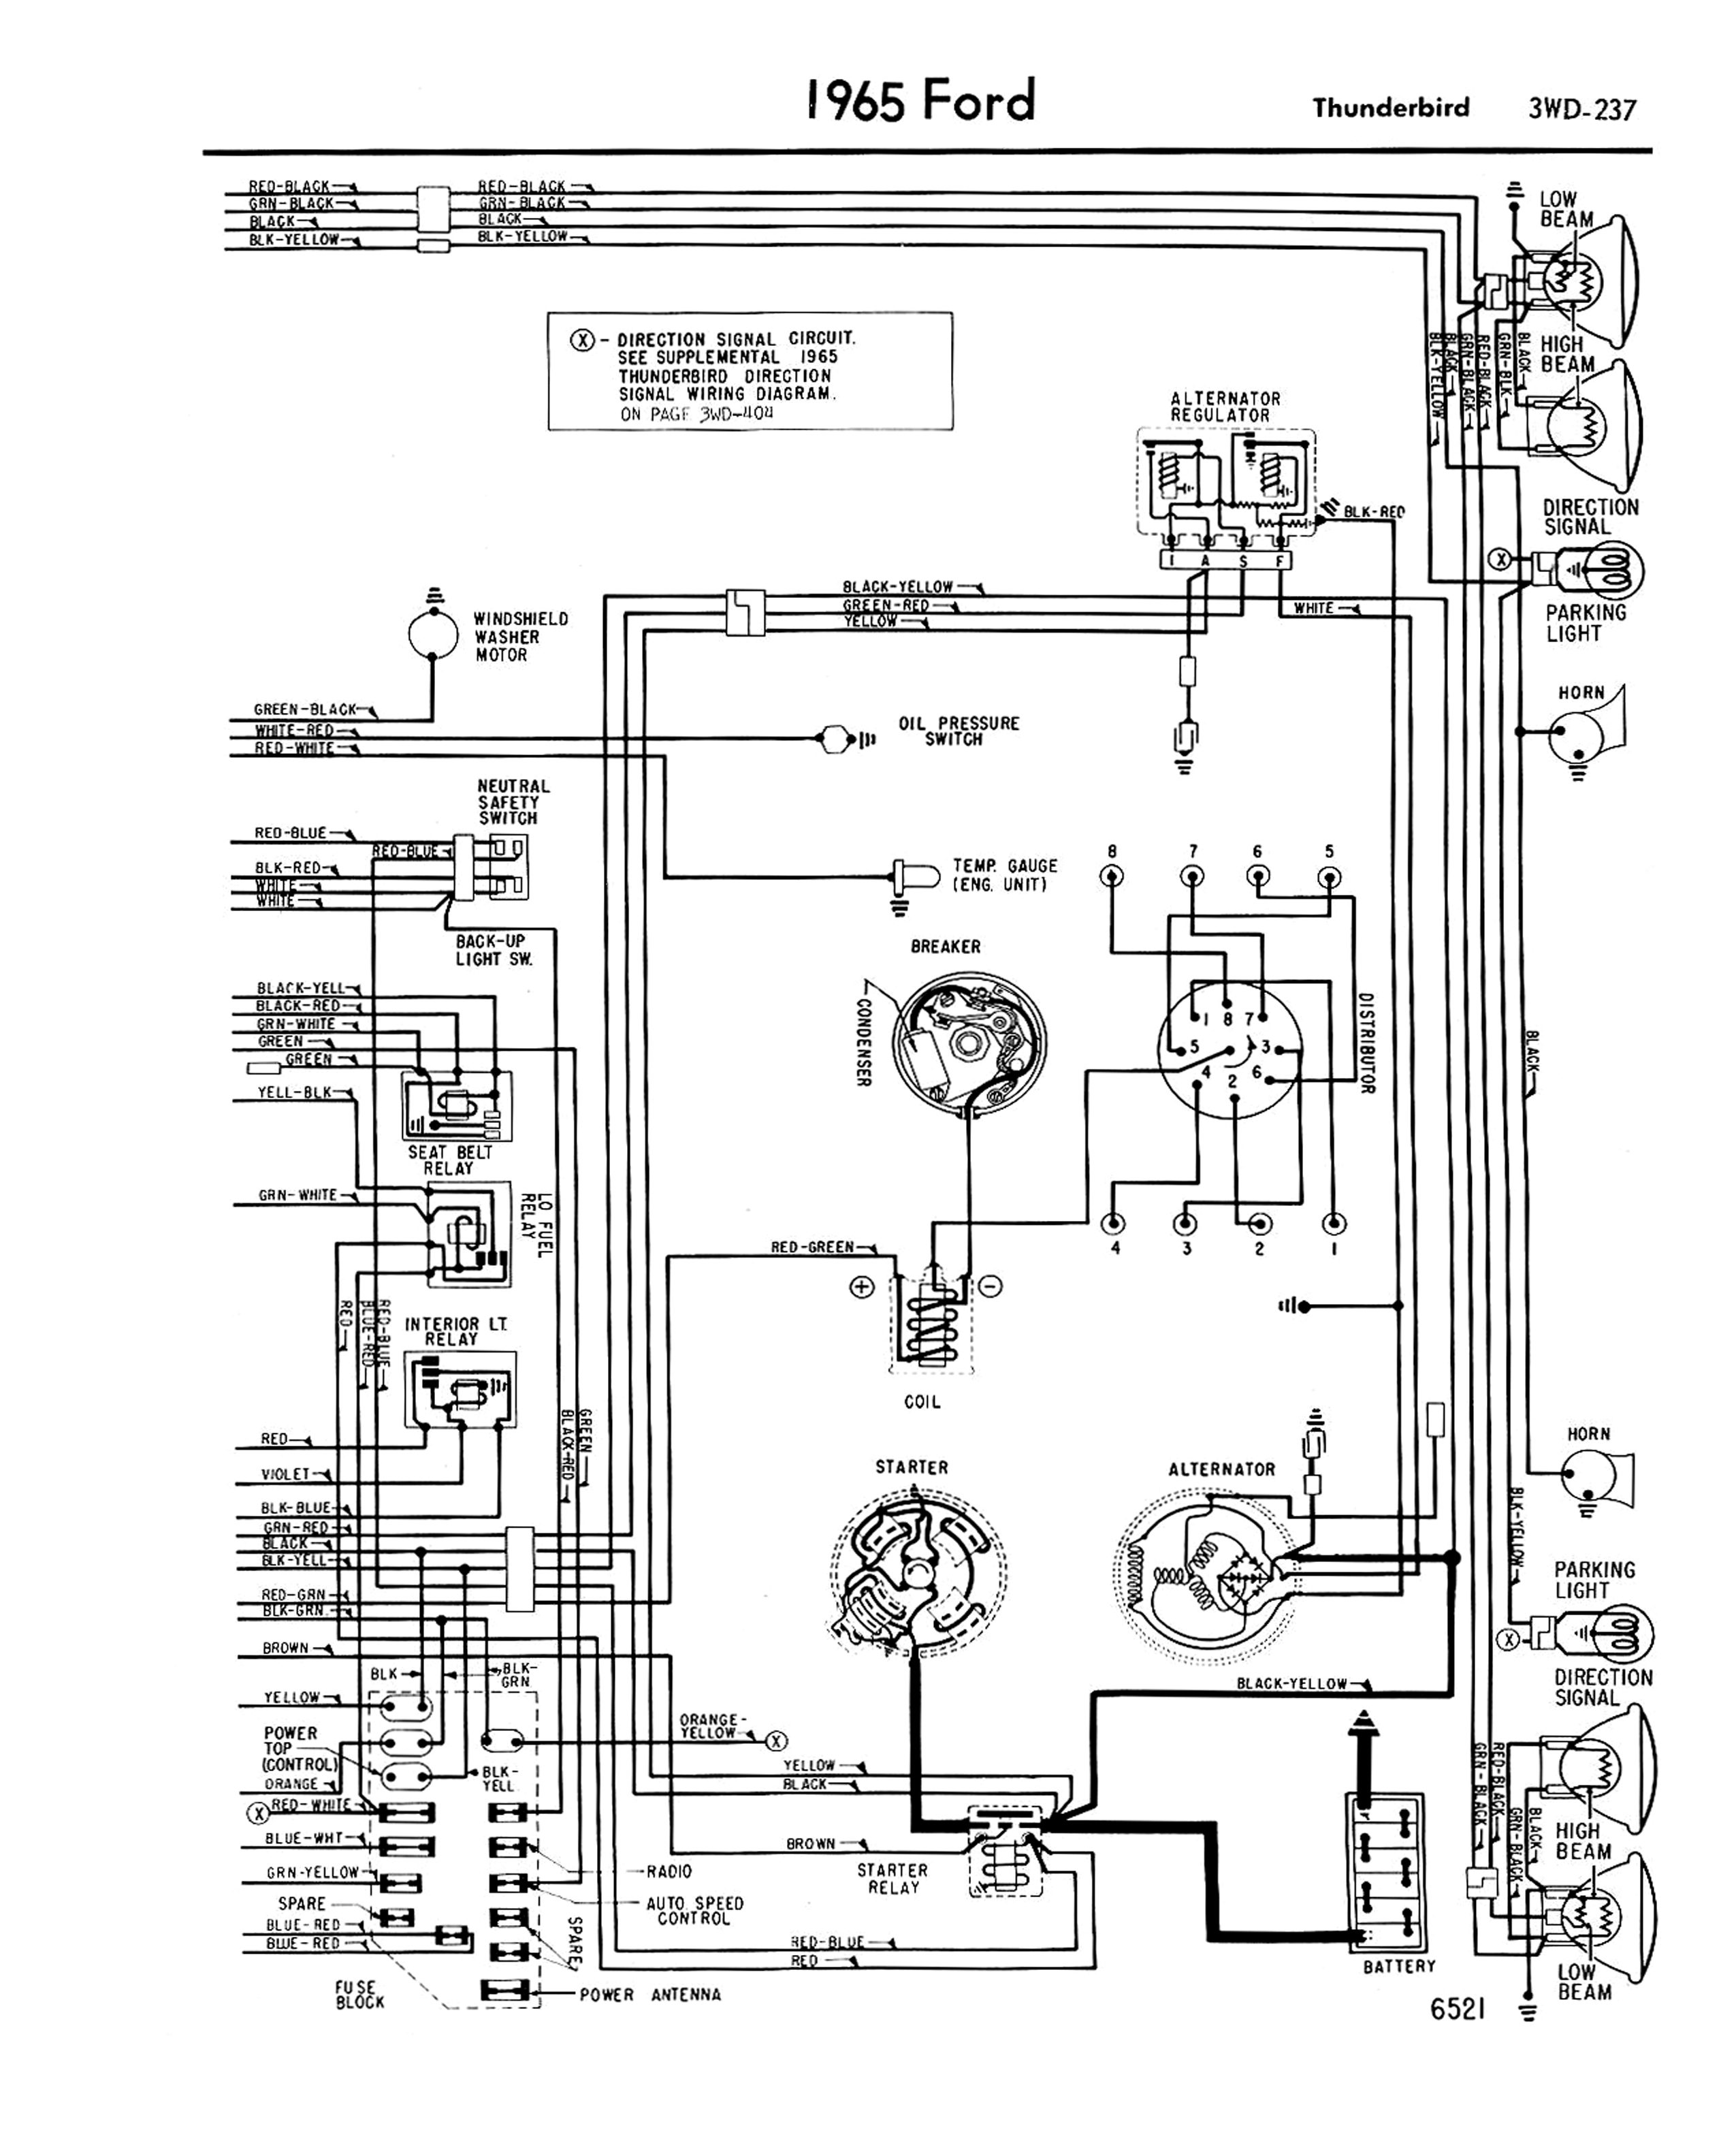 67 Camaro Tail Light Wiring Diagram Great Installation Of 1967 Distributor 1968 Ford Lights Simple Rh 62 Mara Cujas De Ignition Pdf